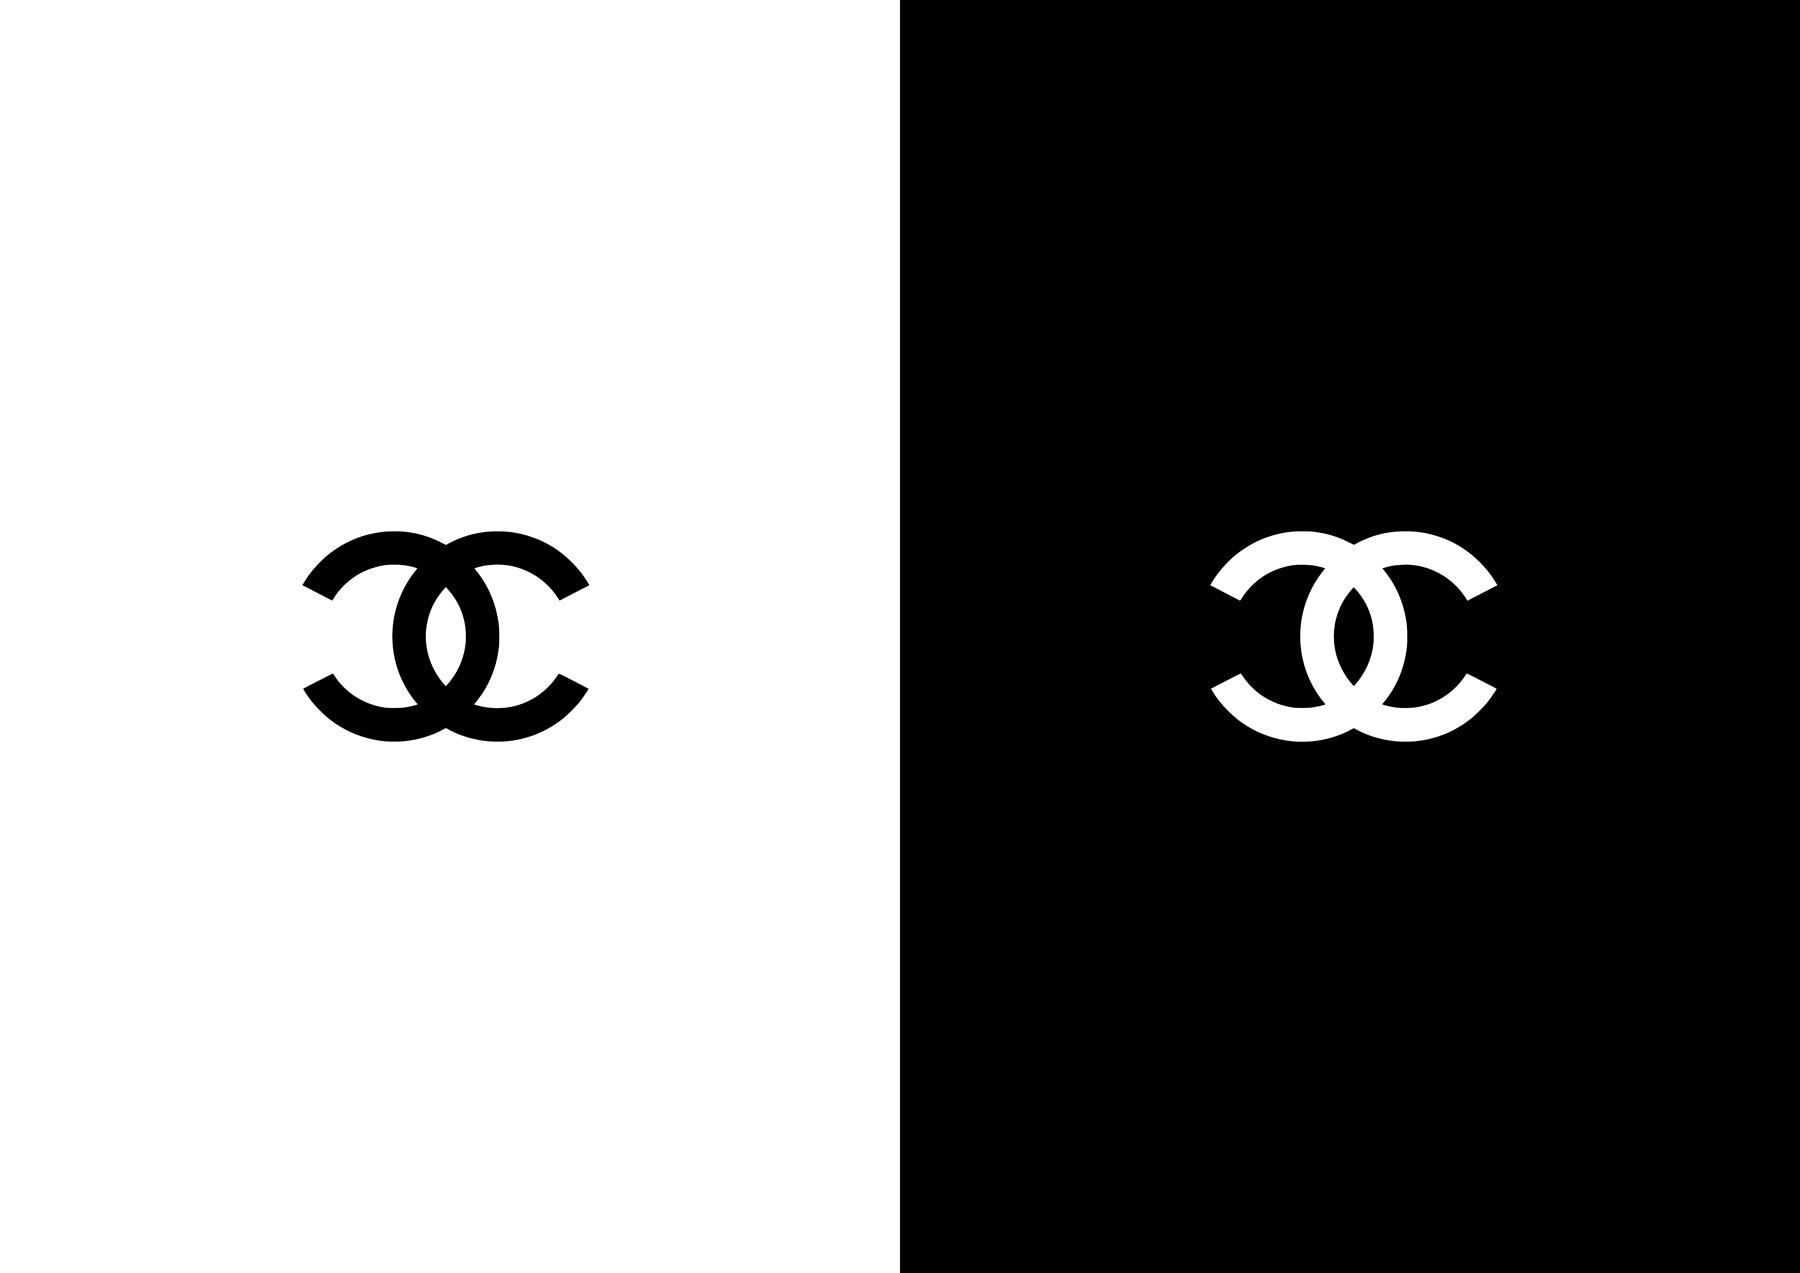 chanel wallpapers black and white